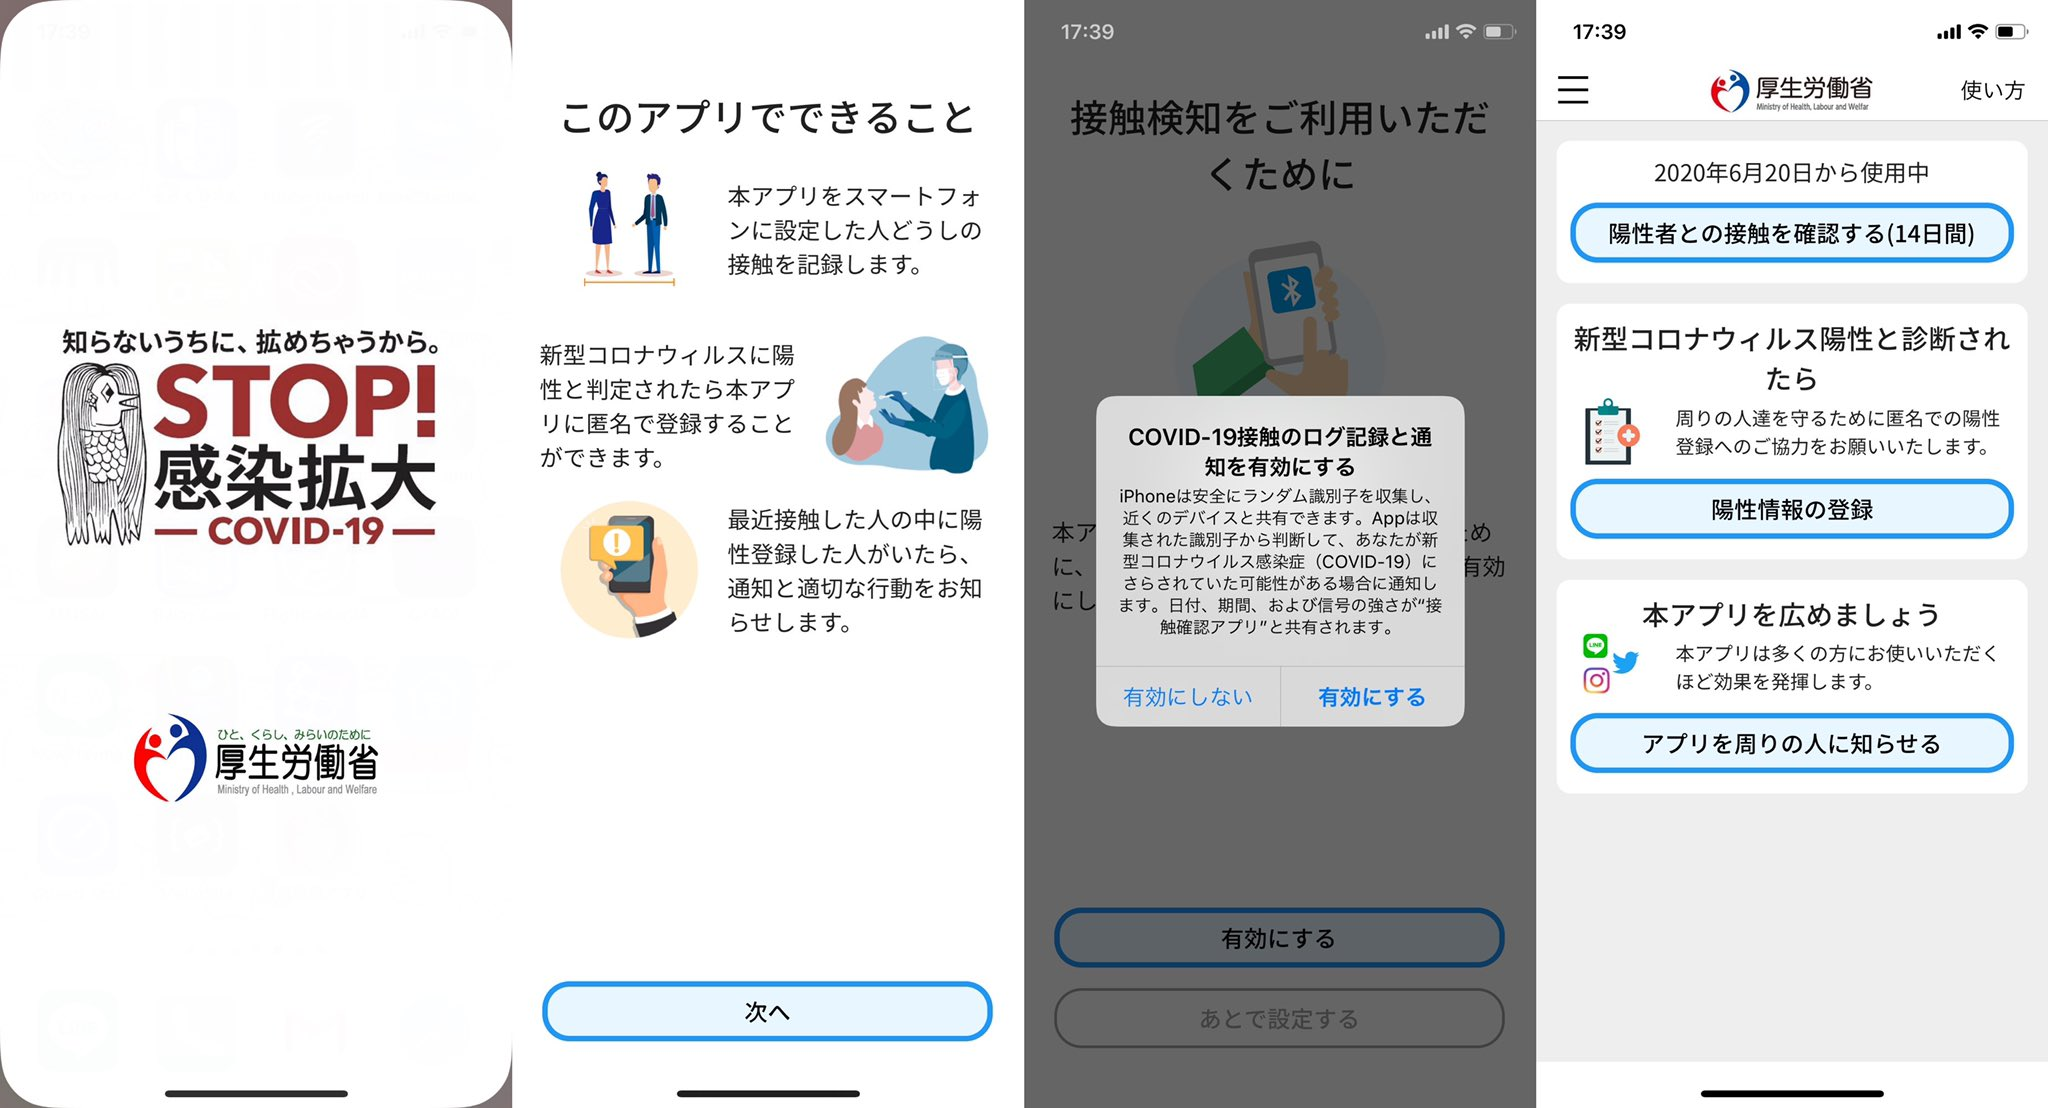 iPhone 11 Pro にインストールだん。  新型コロナウィルス接触確認アプリ  https://t.co/k4noOxrTWc https://t.co/NpYEZWEI7F